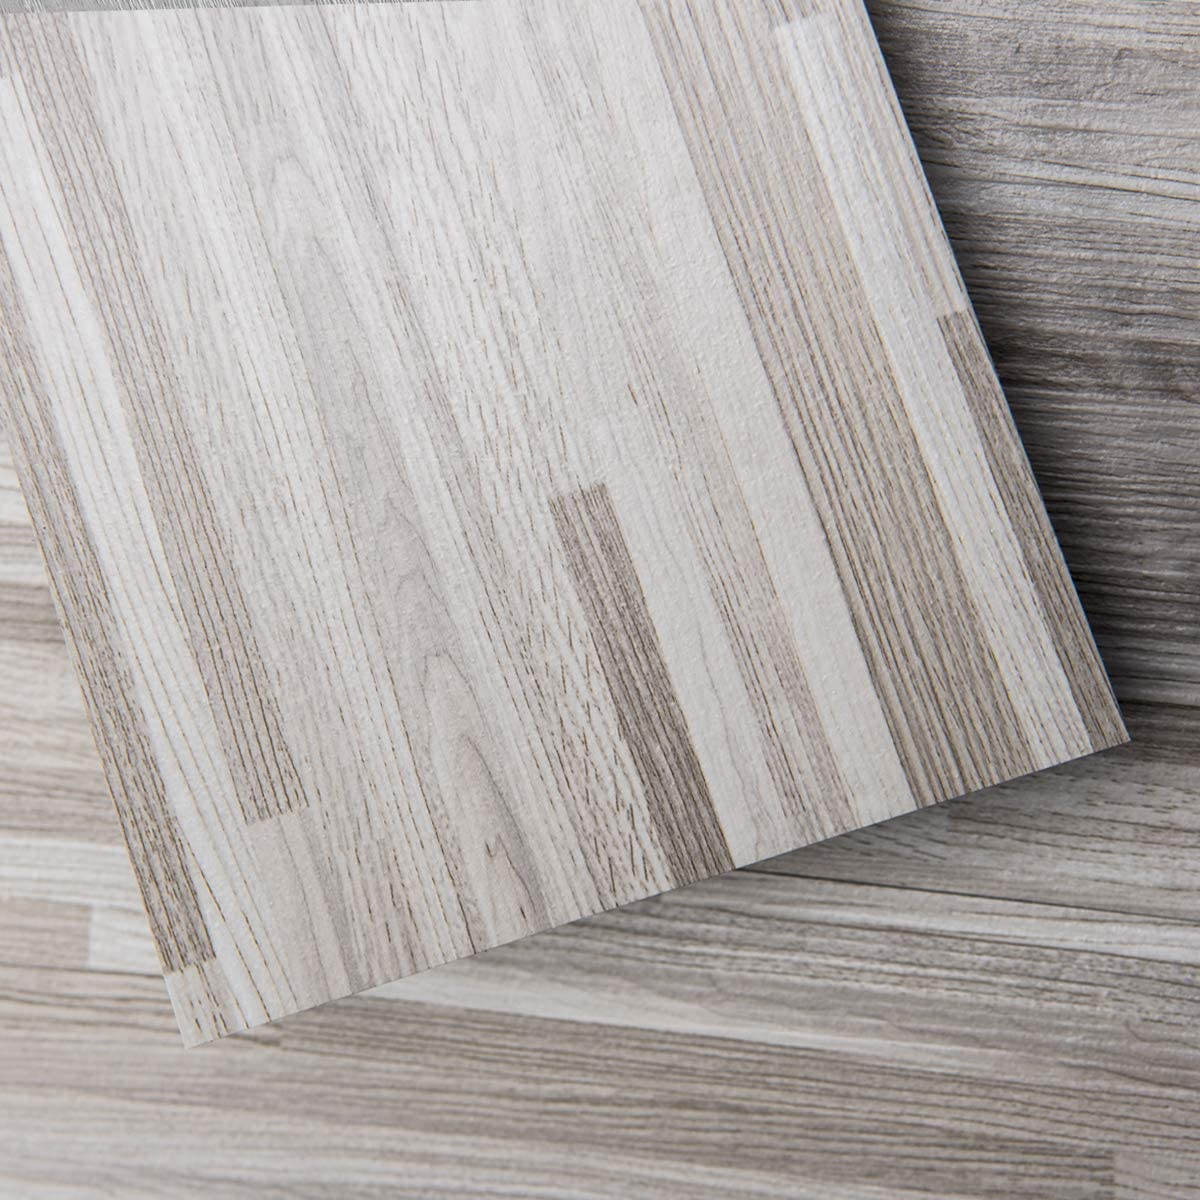 A43002-Peel-and-Stick-Floor-Tile 36 Tiles 54 Sq.Ft